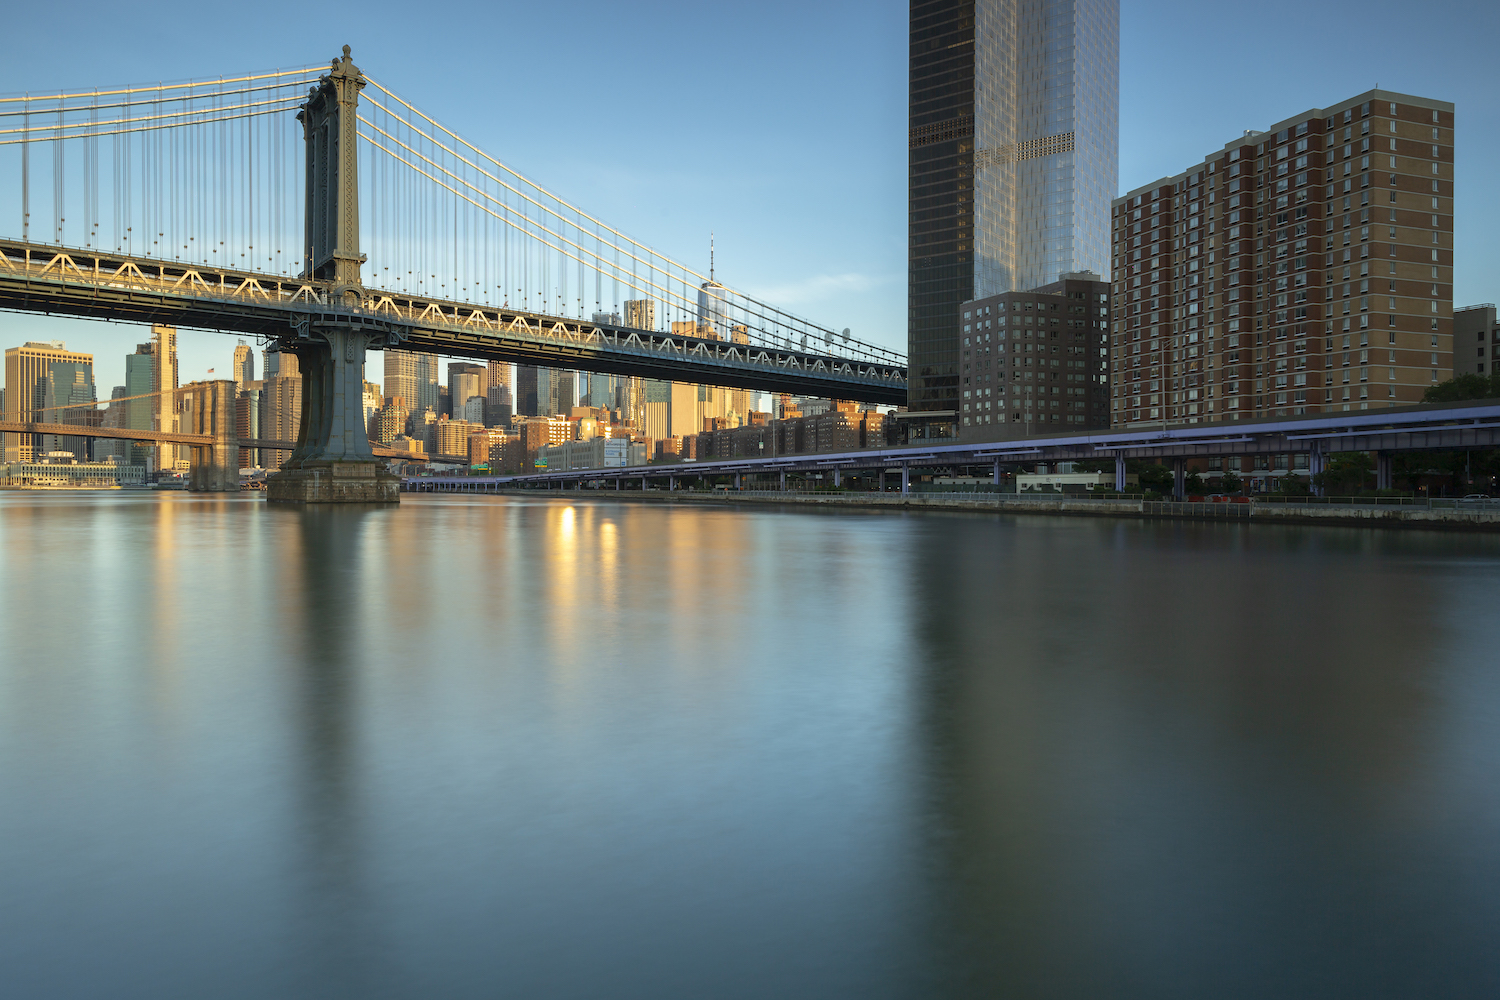 Financial district with two bridges from east river example image 1